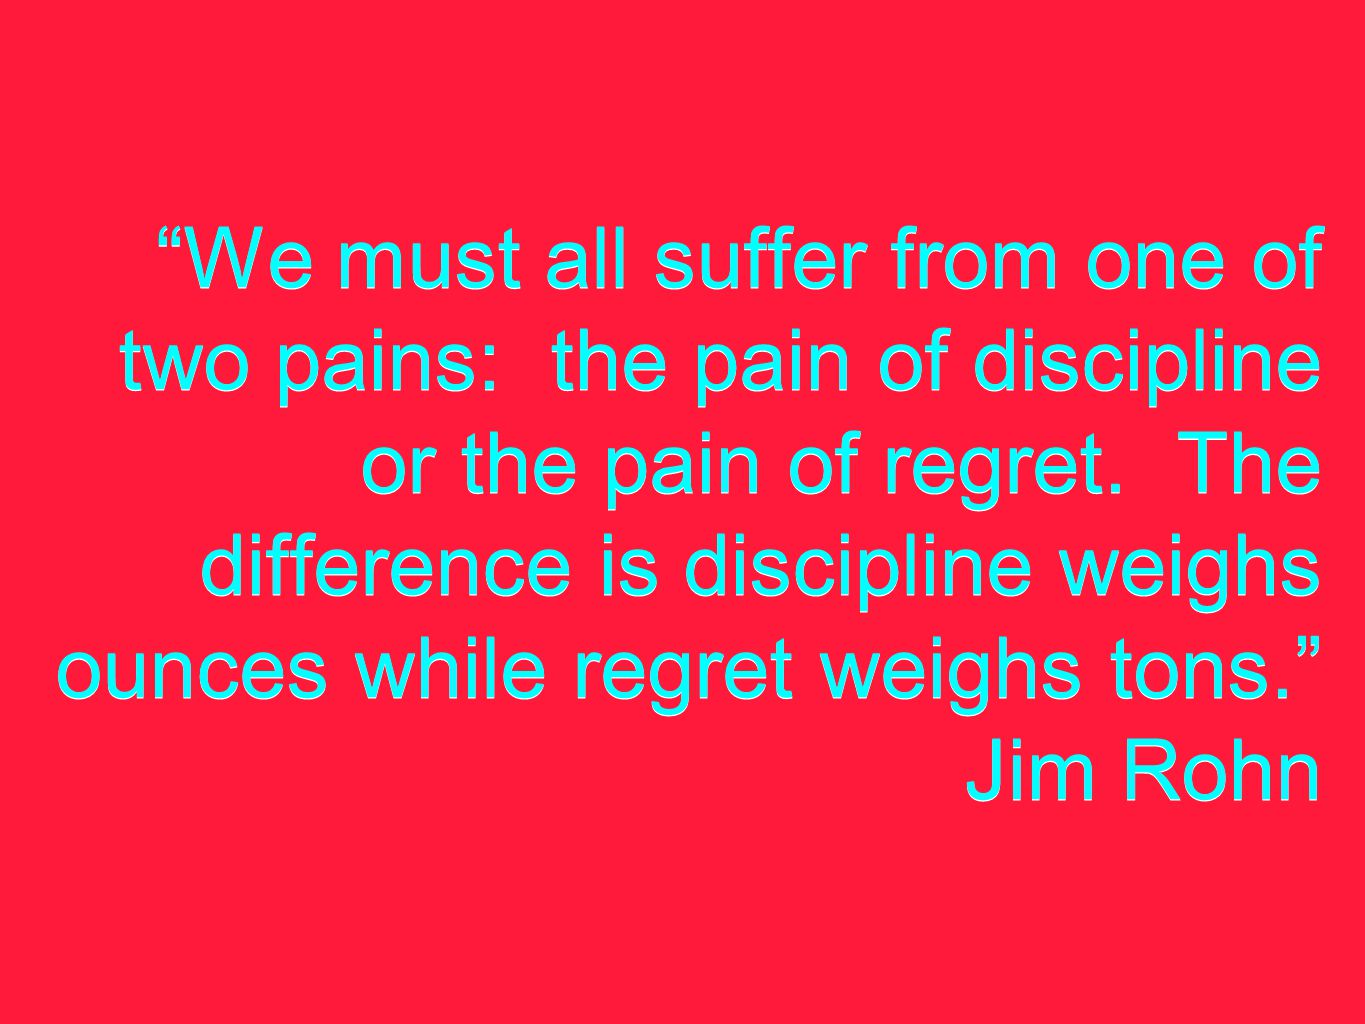 We must all suffer from one of two pains: the pain of discipline or the pain of regret.